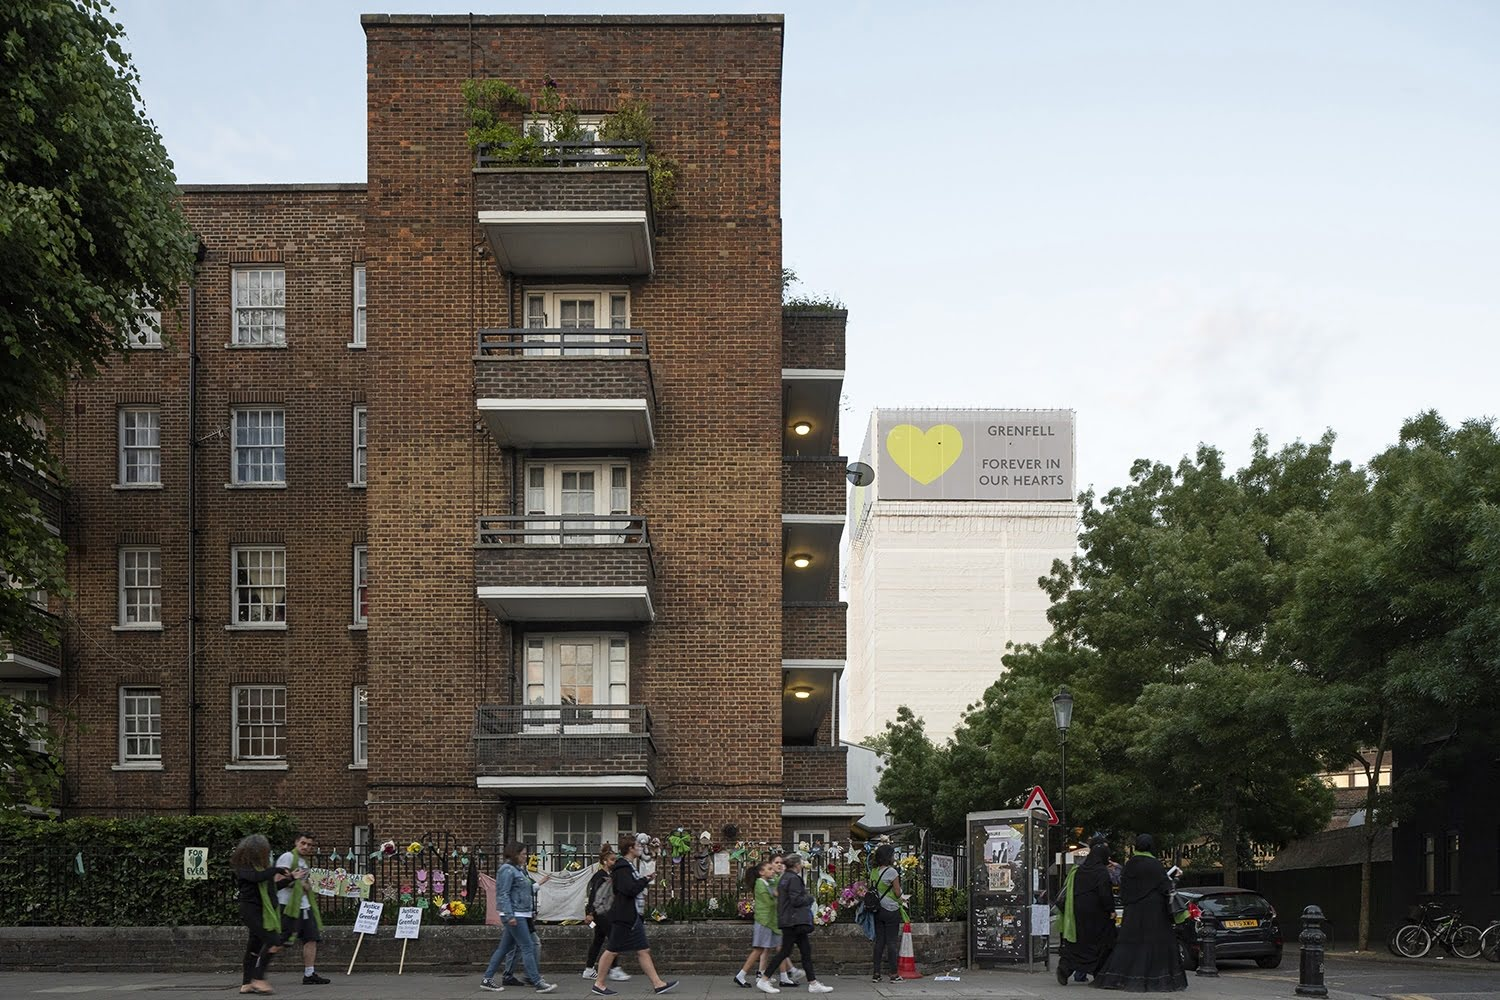 U.K. Asks, Who Pays to Prevent Another Grenfell Tragedy?